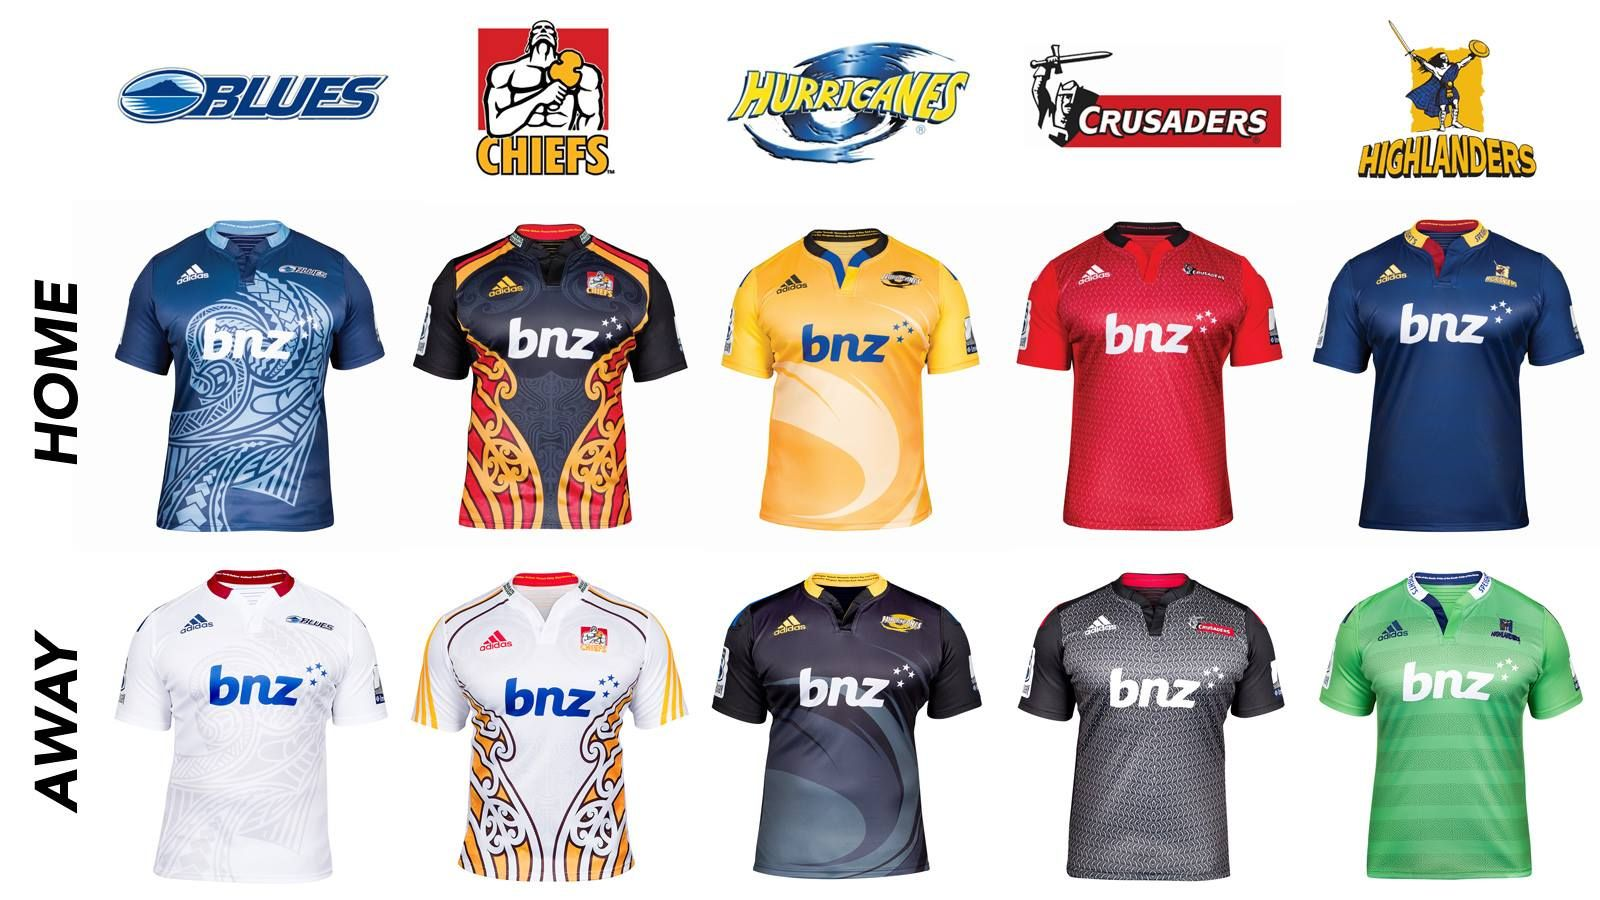 2014 Super Rugby Jerseys For All New Zealand Teams Super Rugby Rugby Rugby Jersey